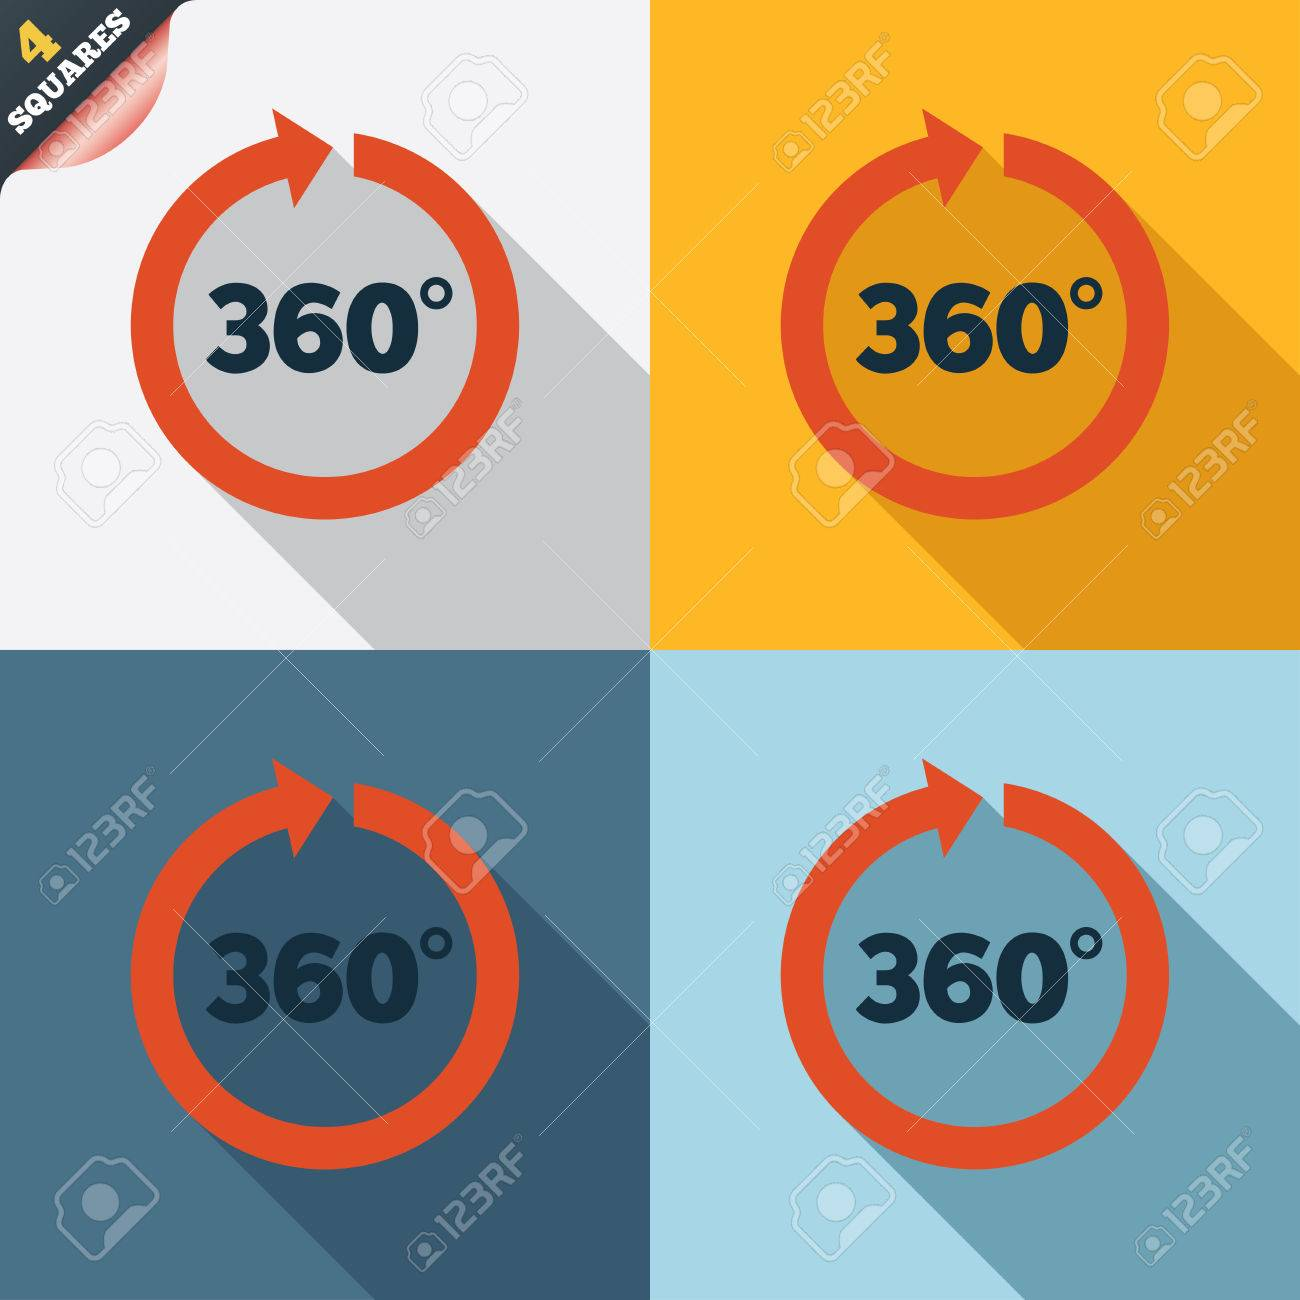 360 Degree Angle Angle 360 Degrees Sign Icon